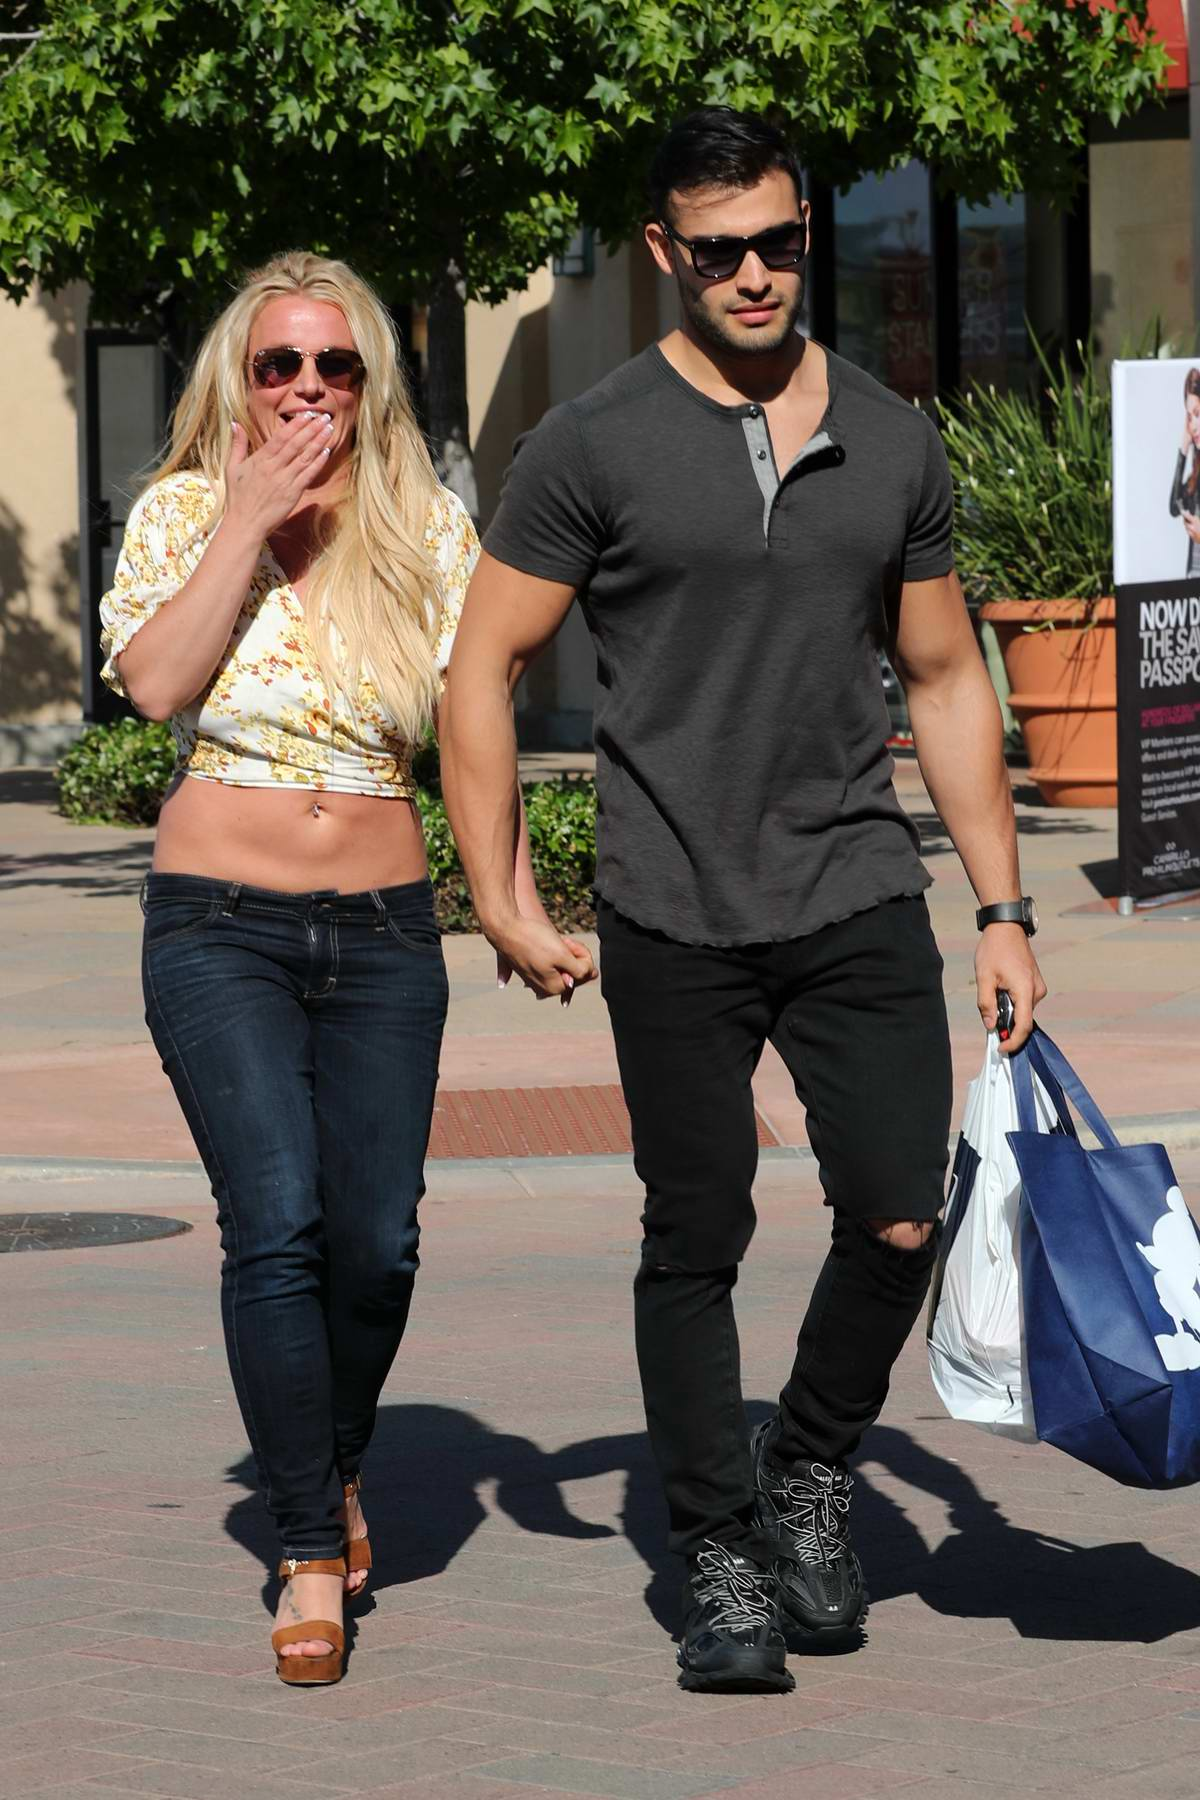 Britney Spears and boyfriend Sam Asghari hold hands while out for shopping at The GAP in Camarillo, California